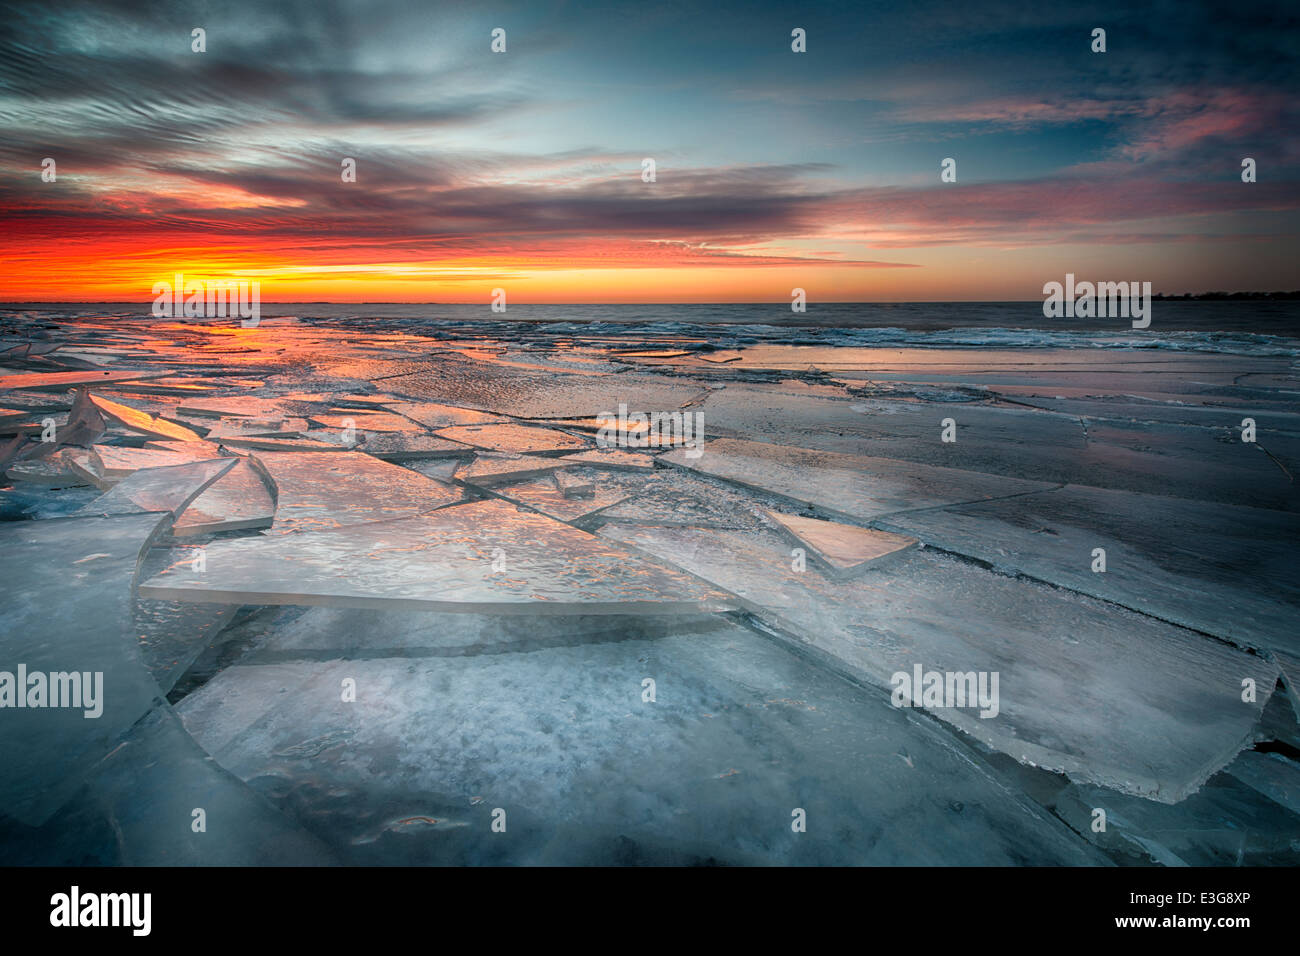 Ice sheets stack along the shores of Lake St. Clair in Southeast Michigan, reflecting the colors of twilight. - Stock Image